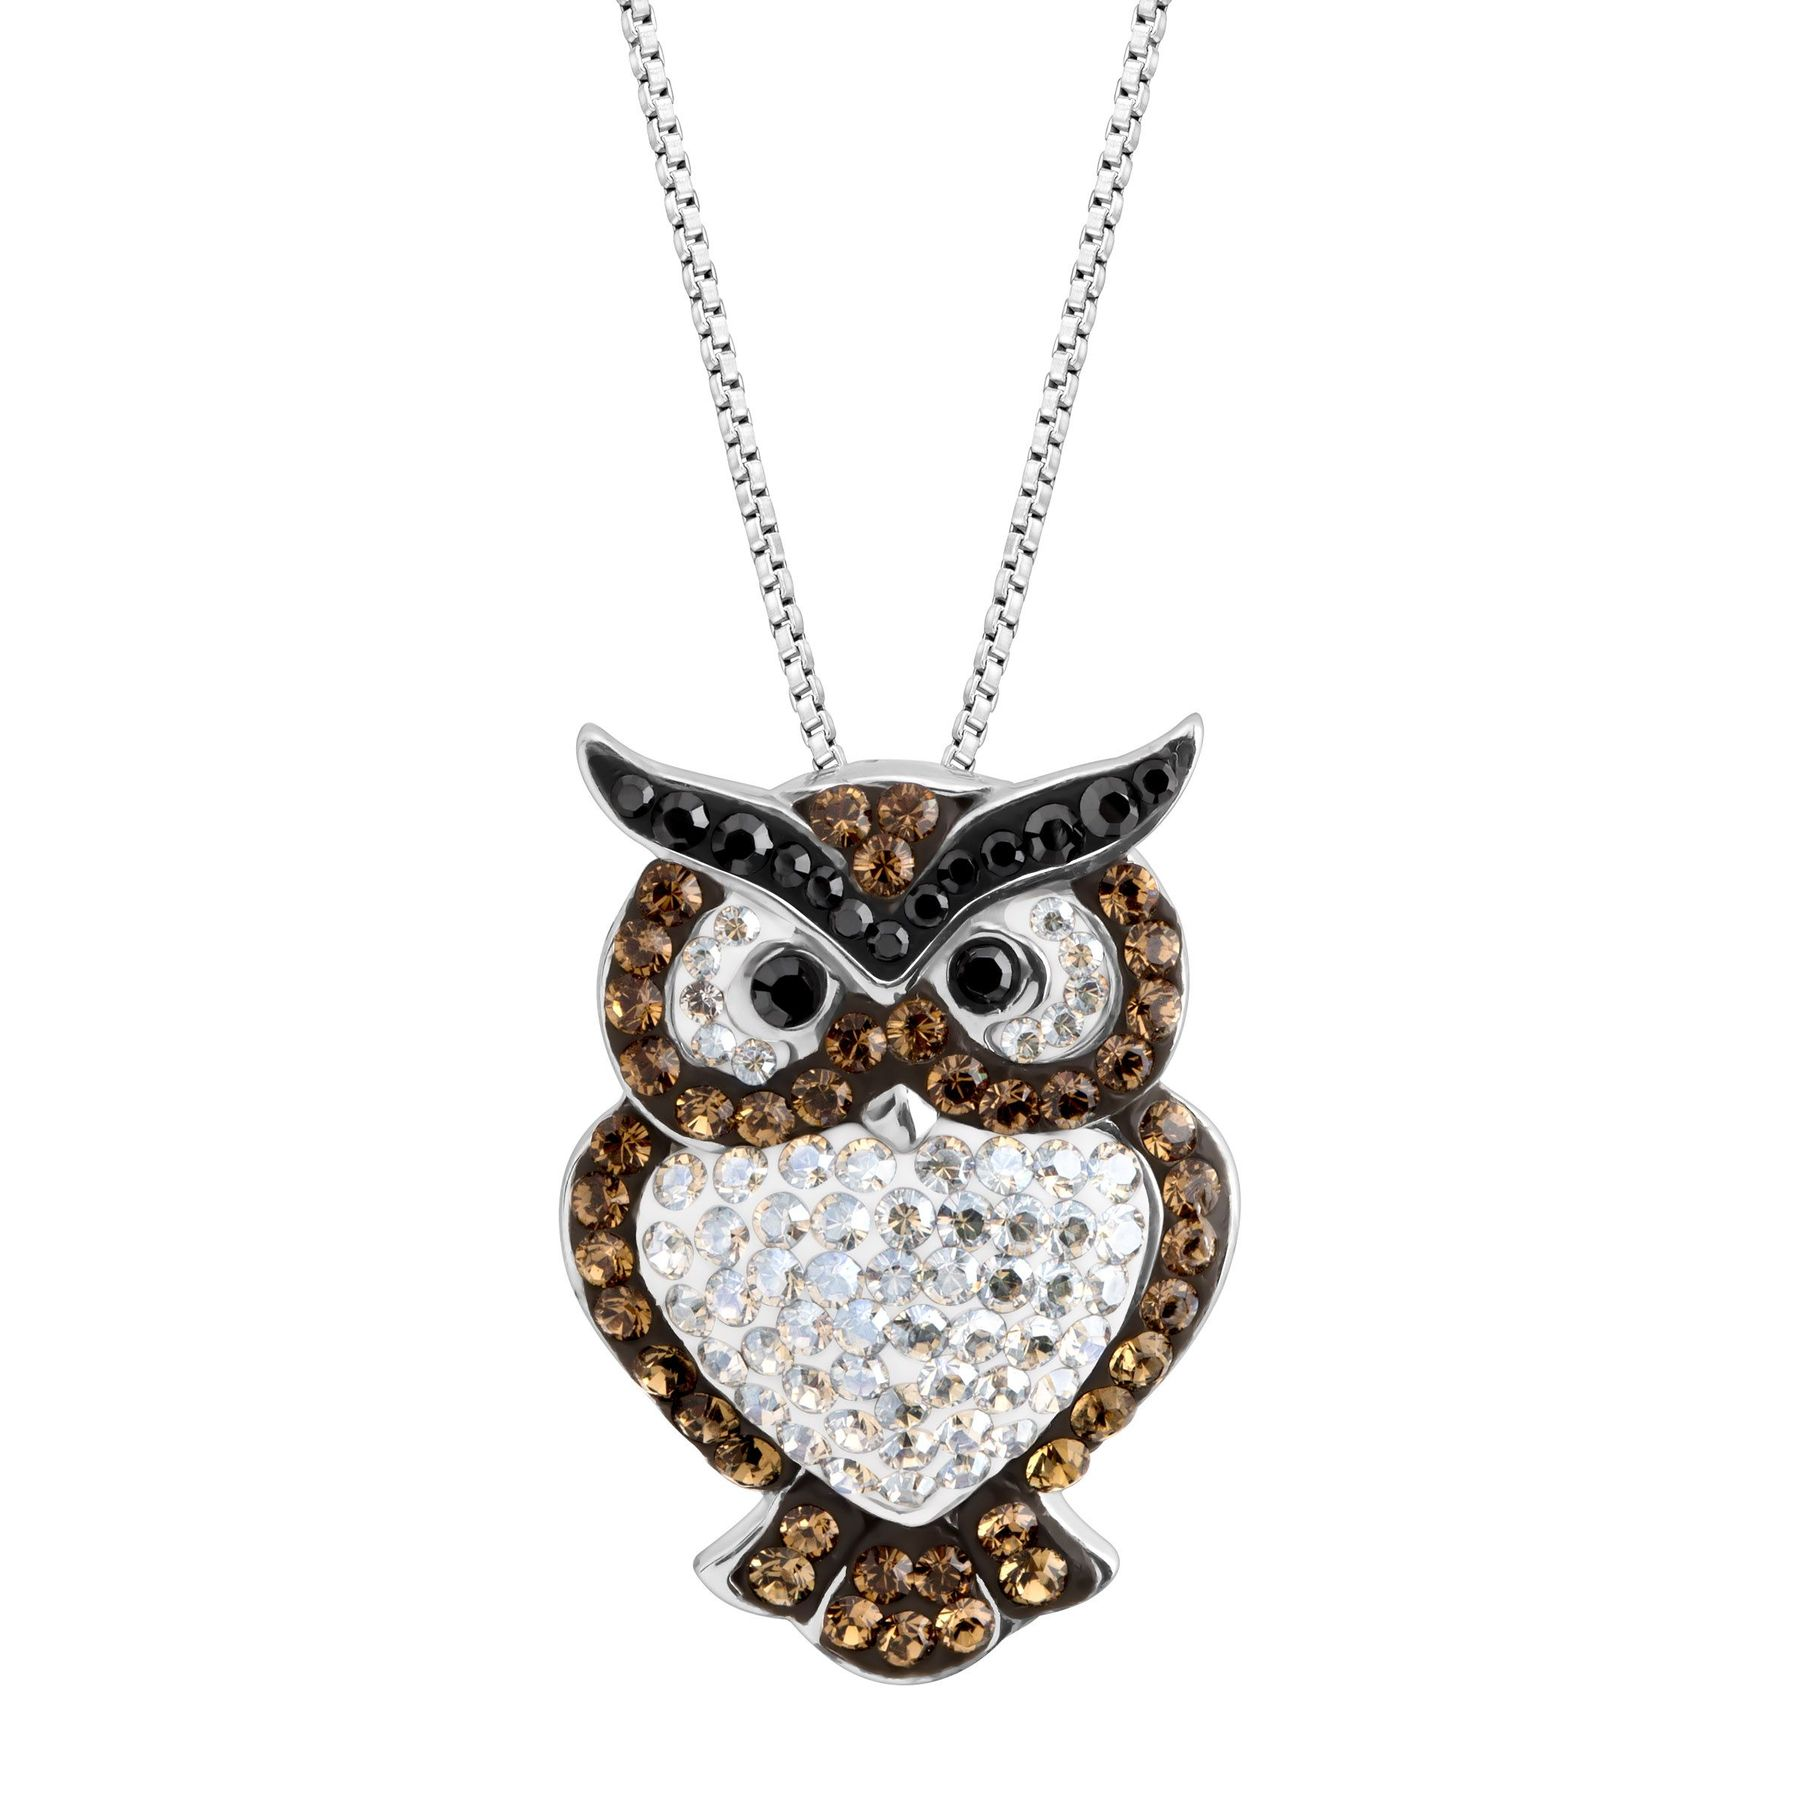 rhinestone pendant necklace awesome eyes owl jewerly womens shop retro